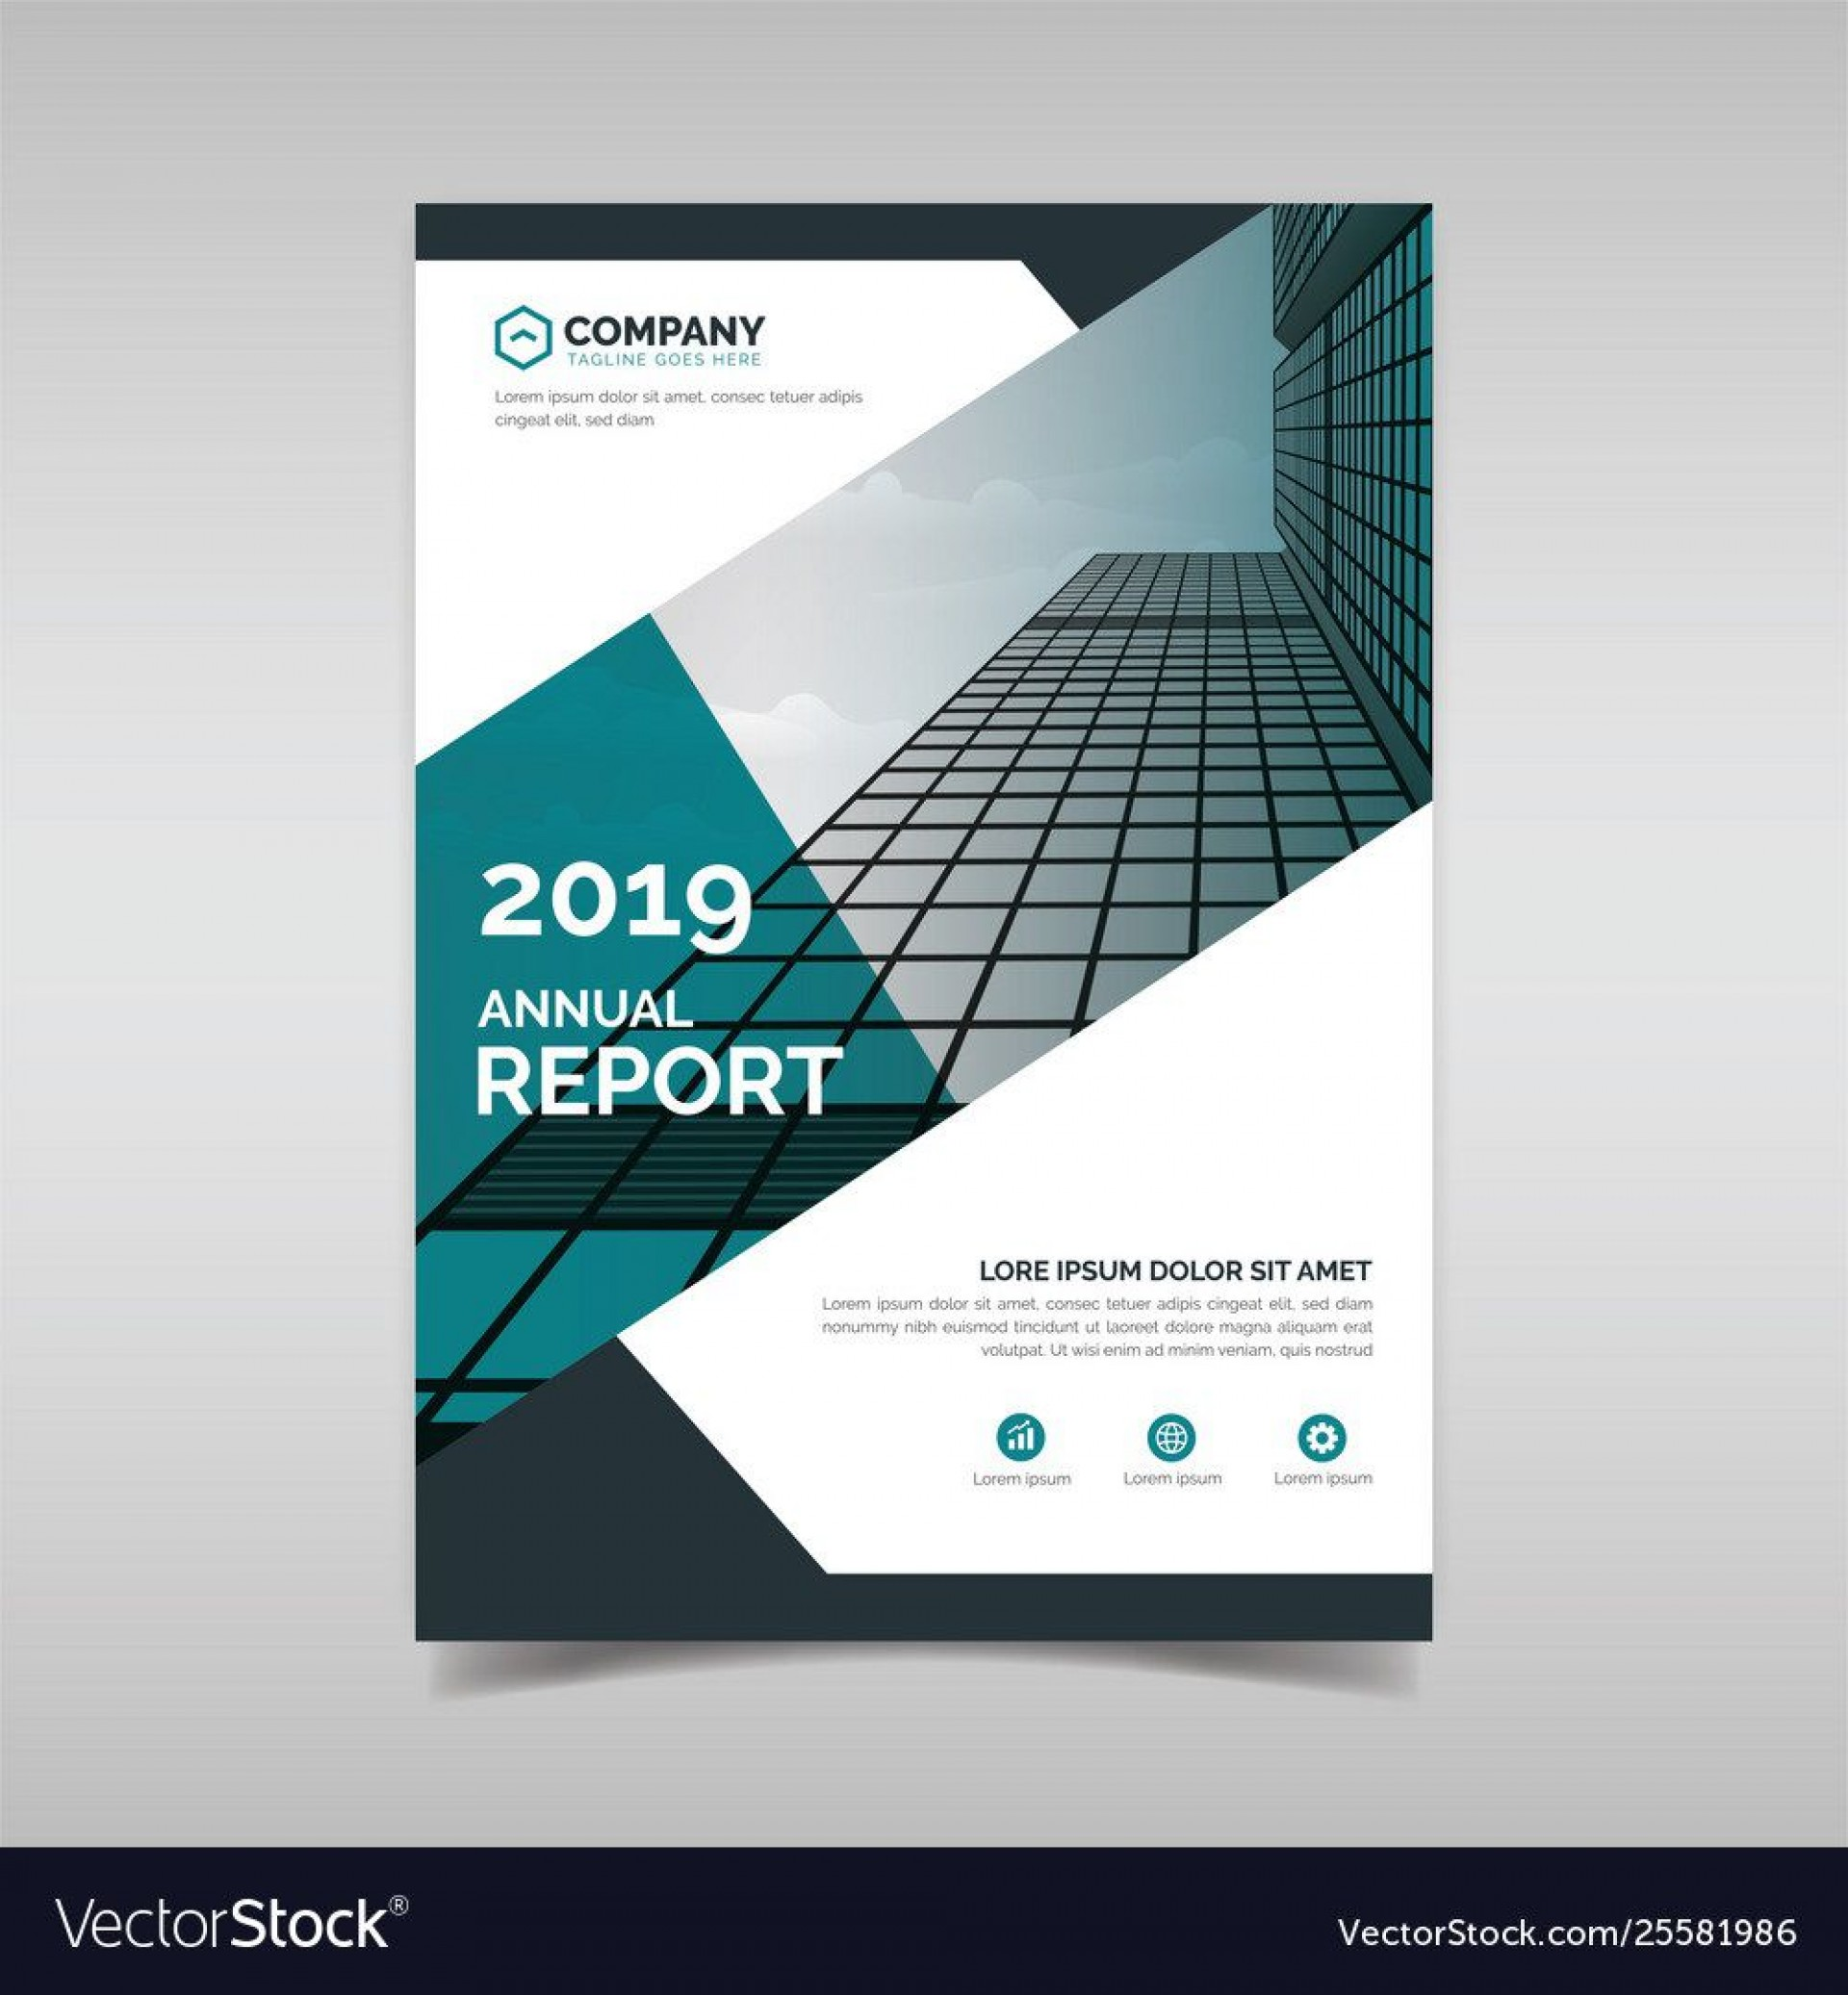 004 Imposing Free Download Annual Report Cover Design Template High Resolution  Indesign In Word1920